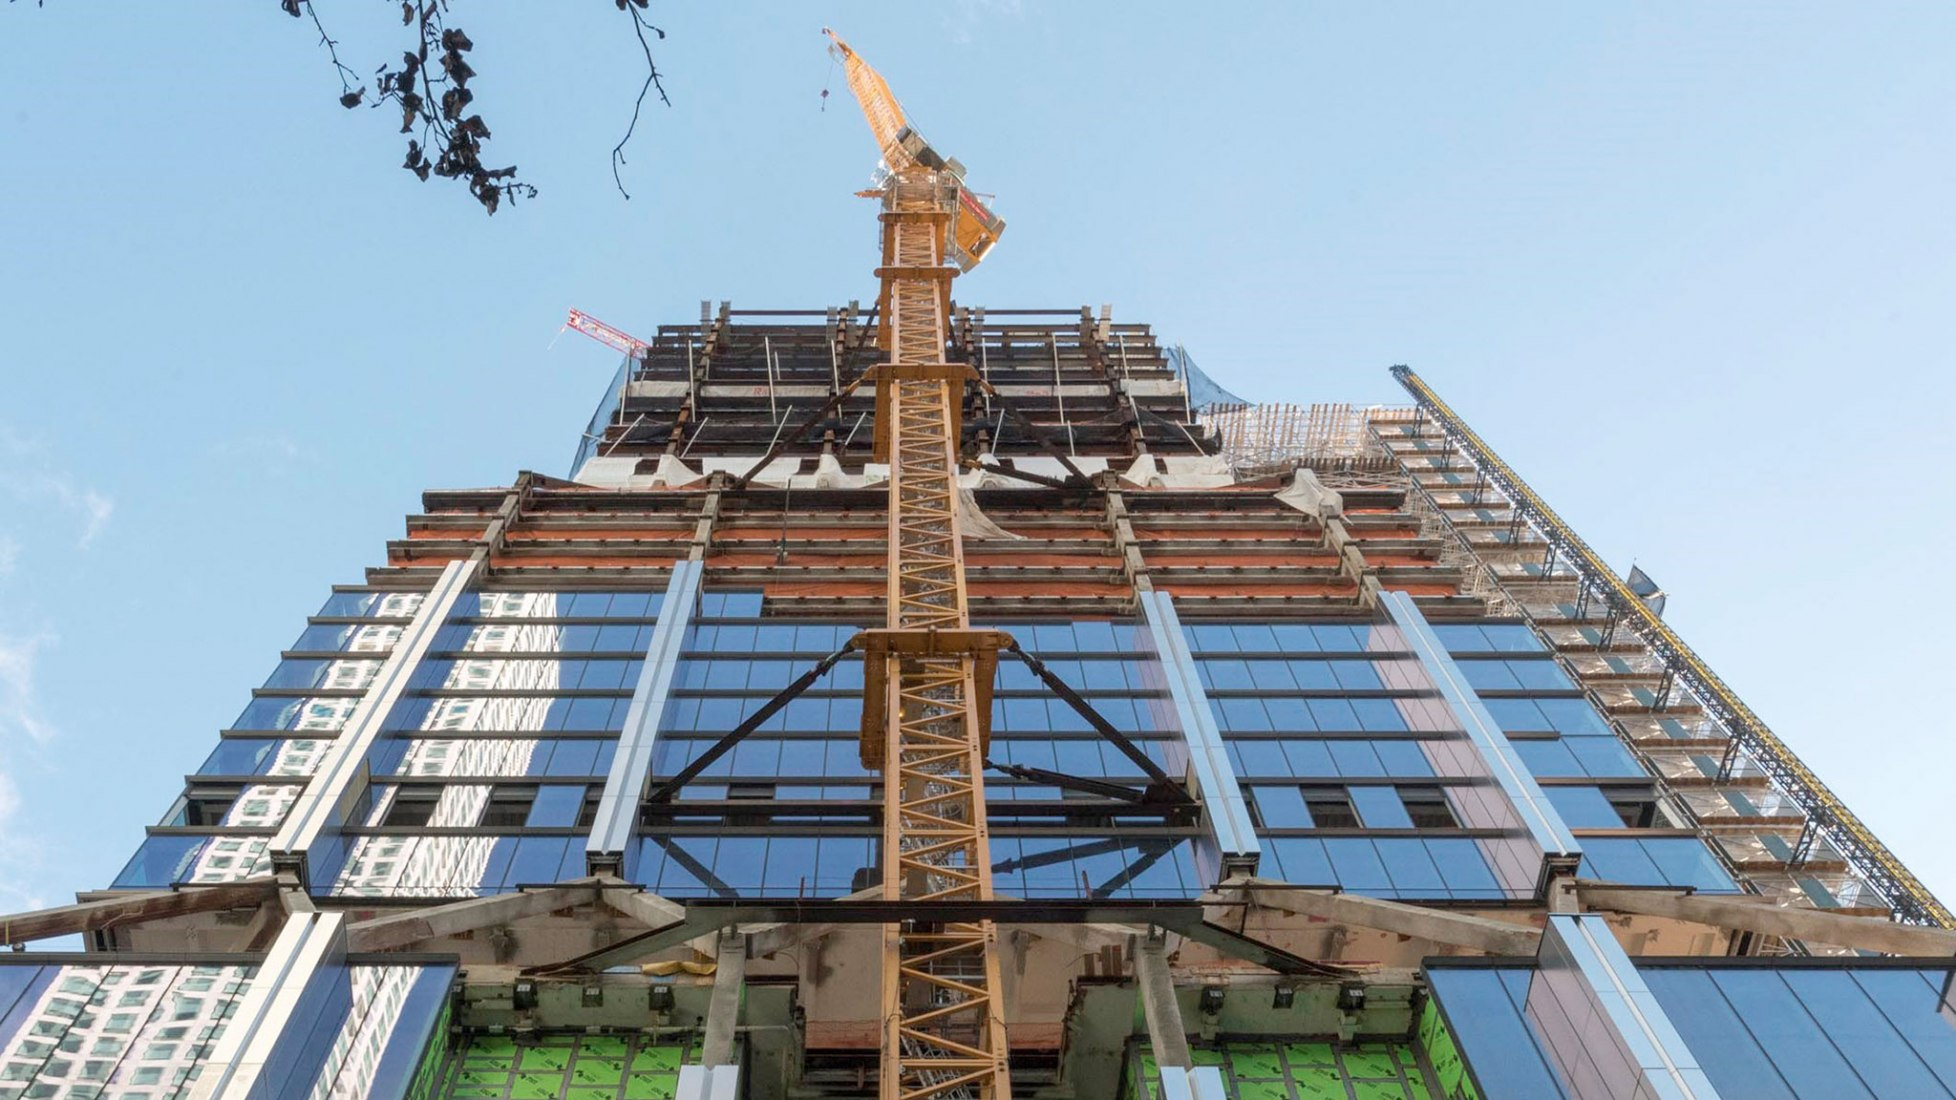 425 Park Avenue tops out by Foster + Partners. Photography by Nigel Young / Foster + Partners